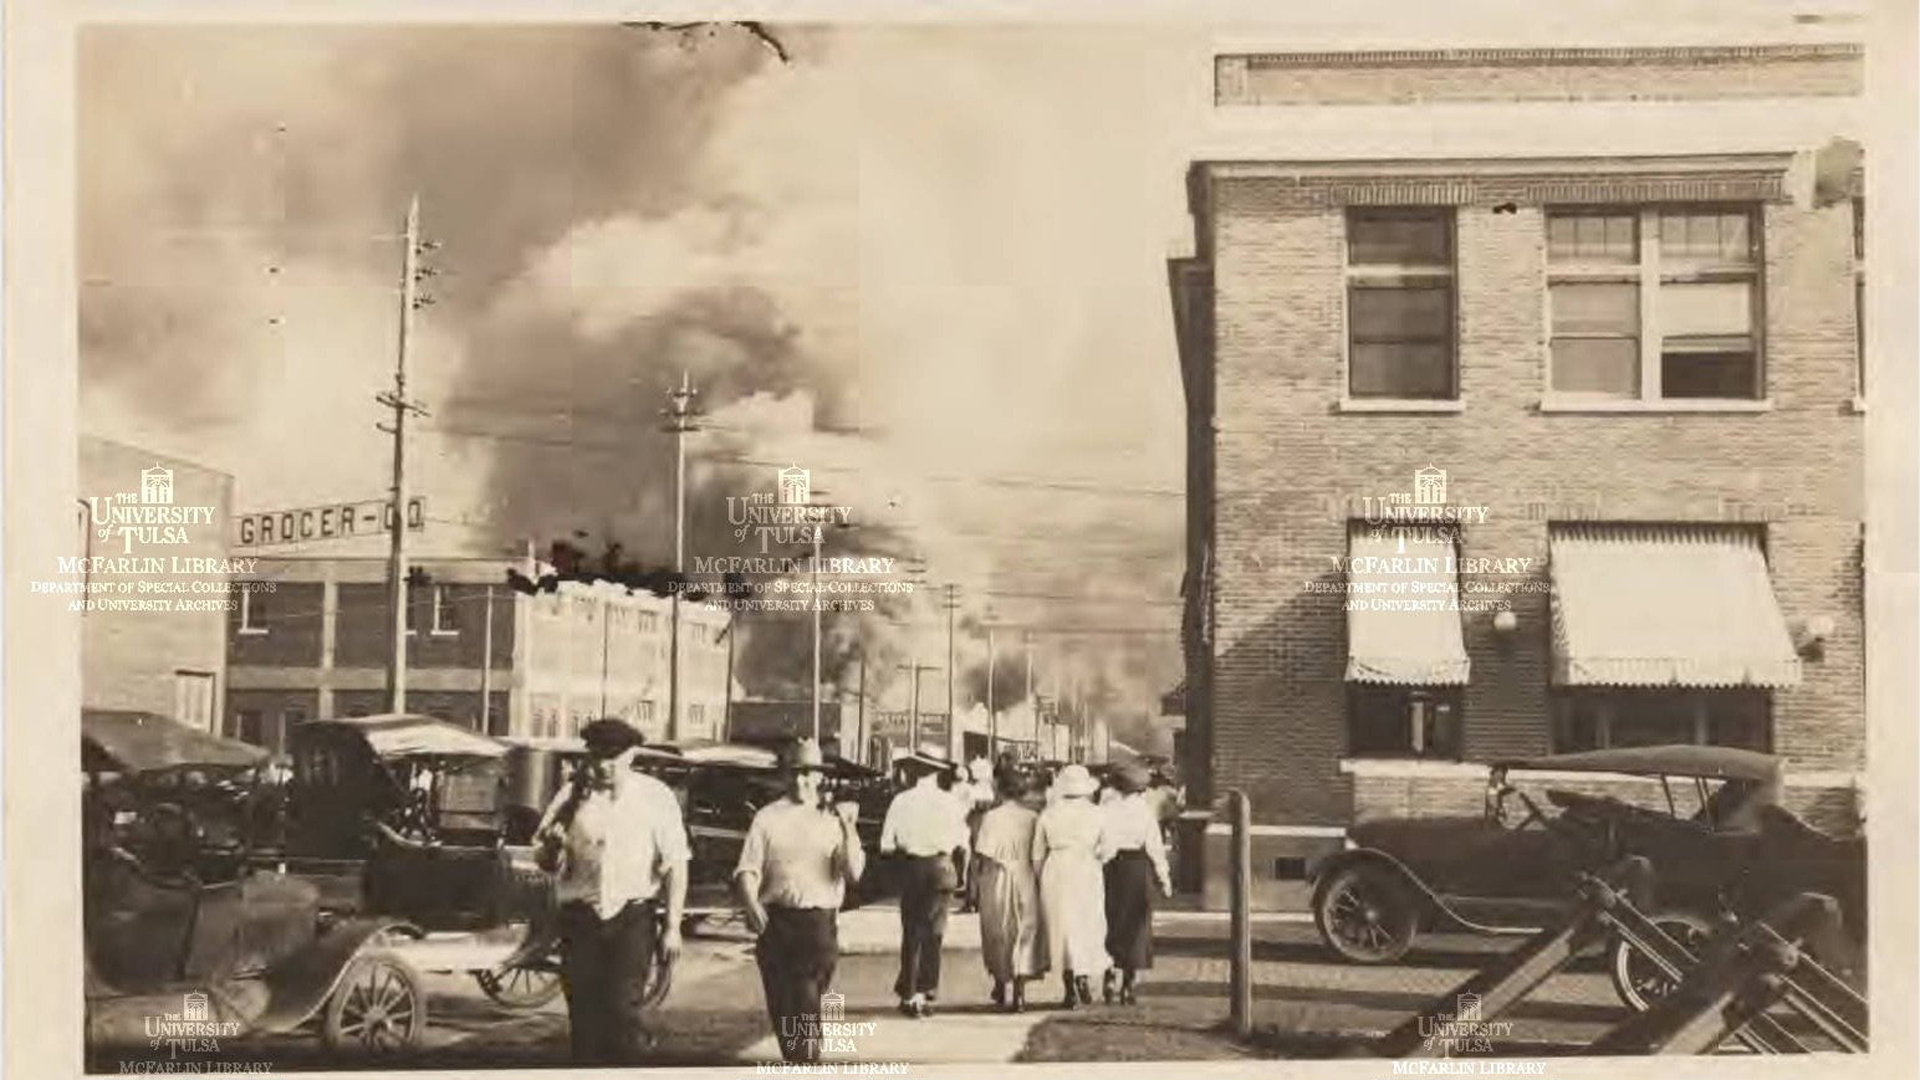 Investigators are trying to determine if two possible mass grave sites recently uncovered are linked to the 1921 Tulsa race riots. (Credit: McFarlin Library, University of Tulsa)